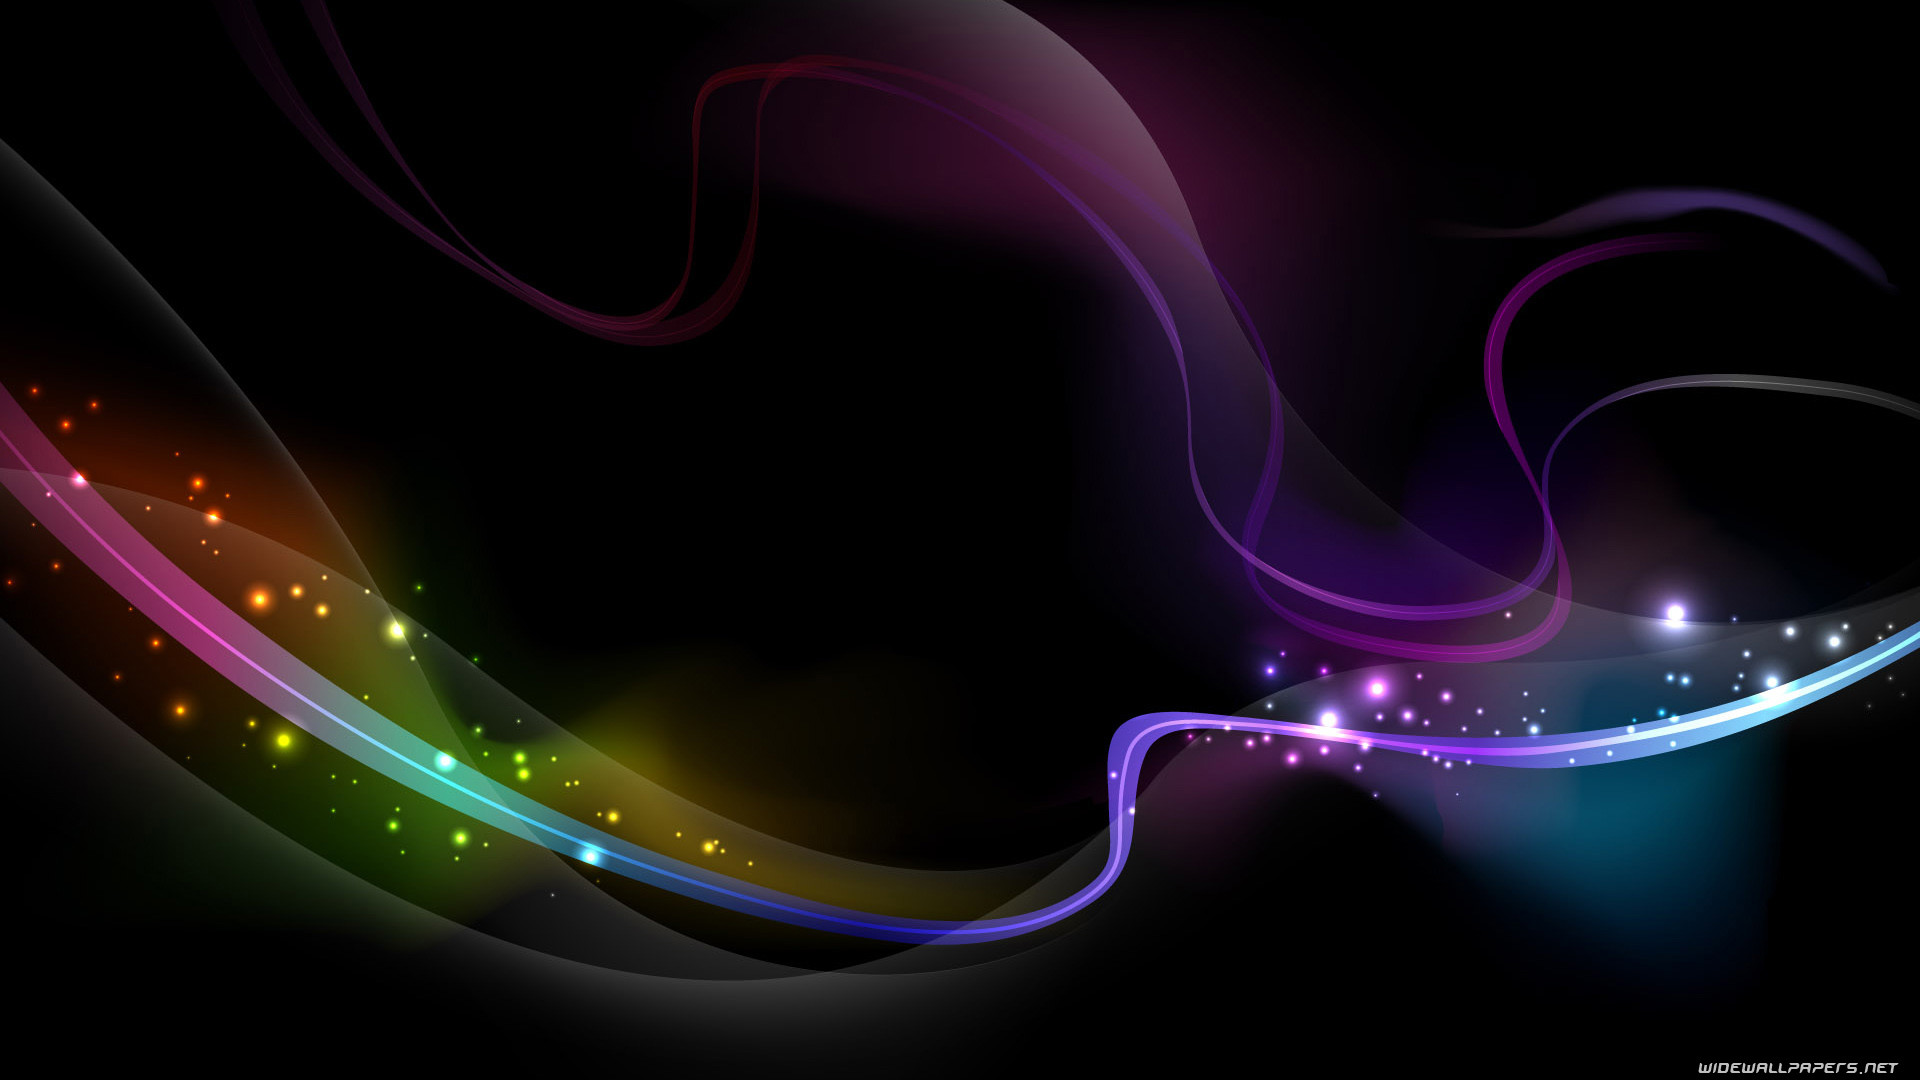 Abstract Wallpaper: Girly Purple Wallpapers High Definition for HD Girly Abstract  Backgrounds Wallpapers)